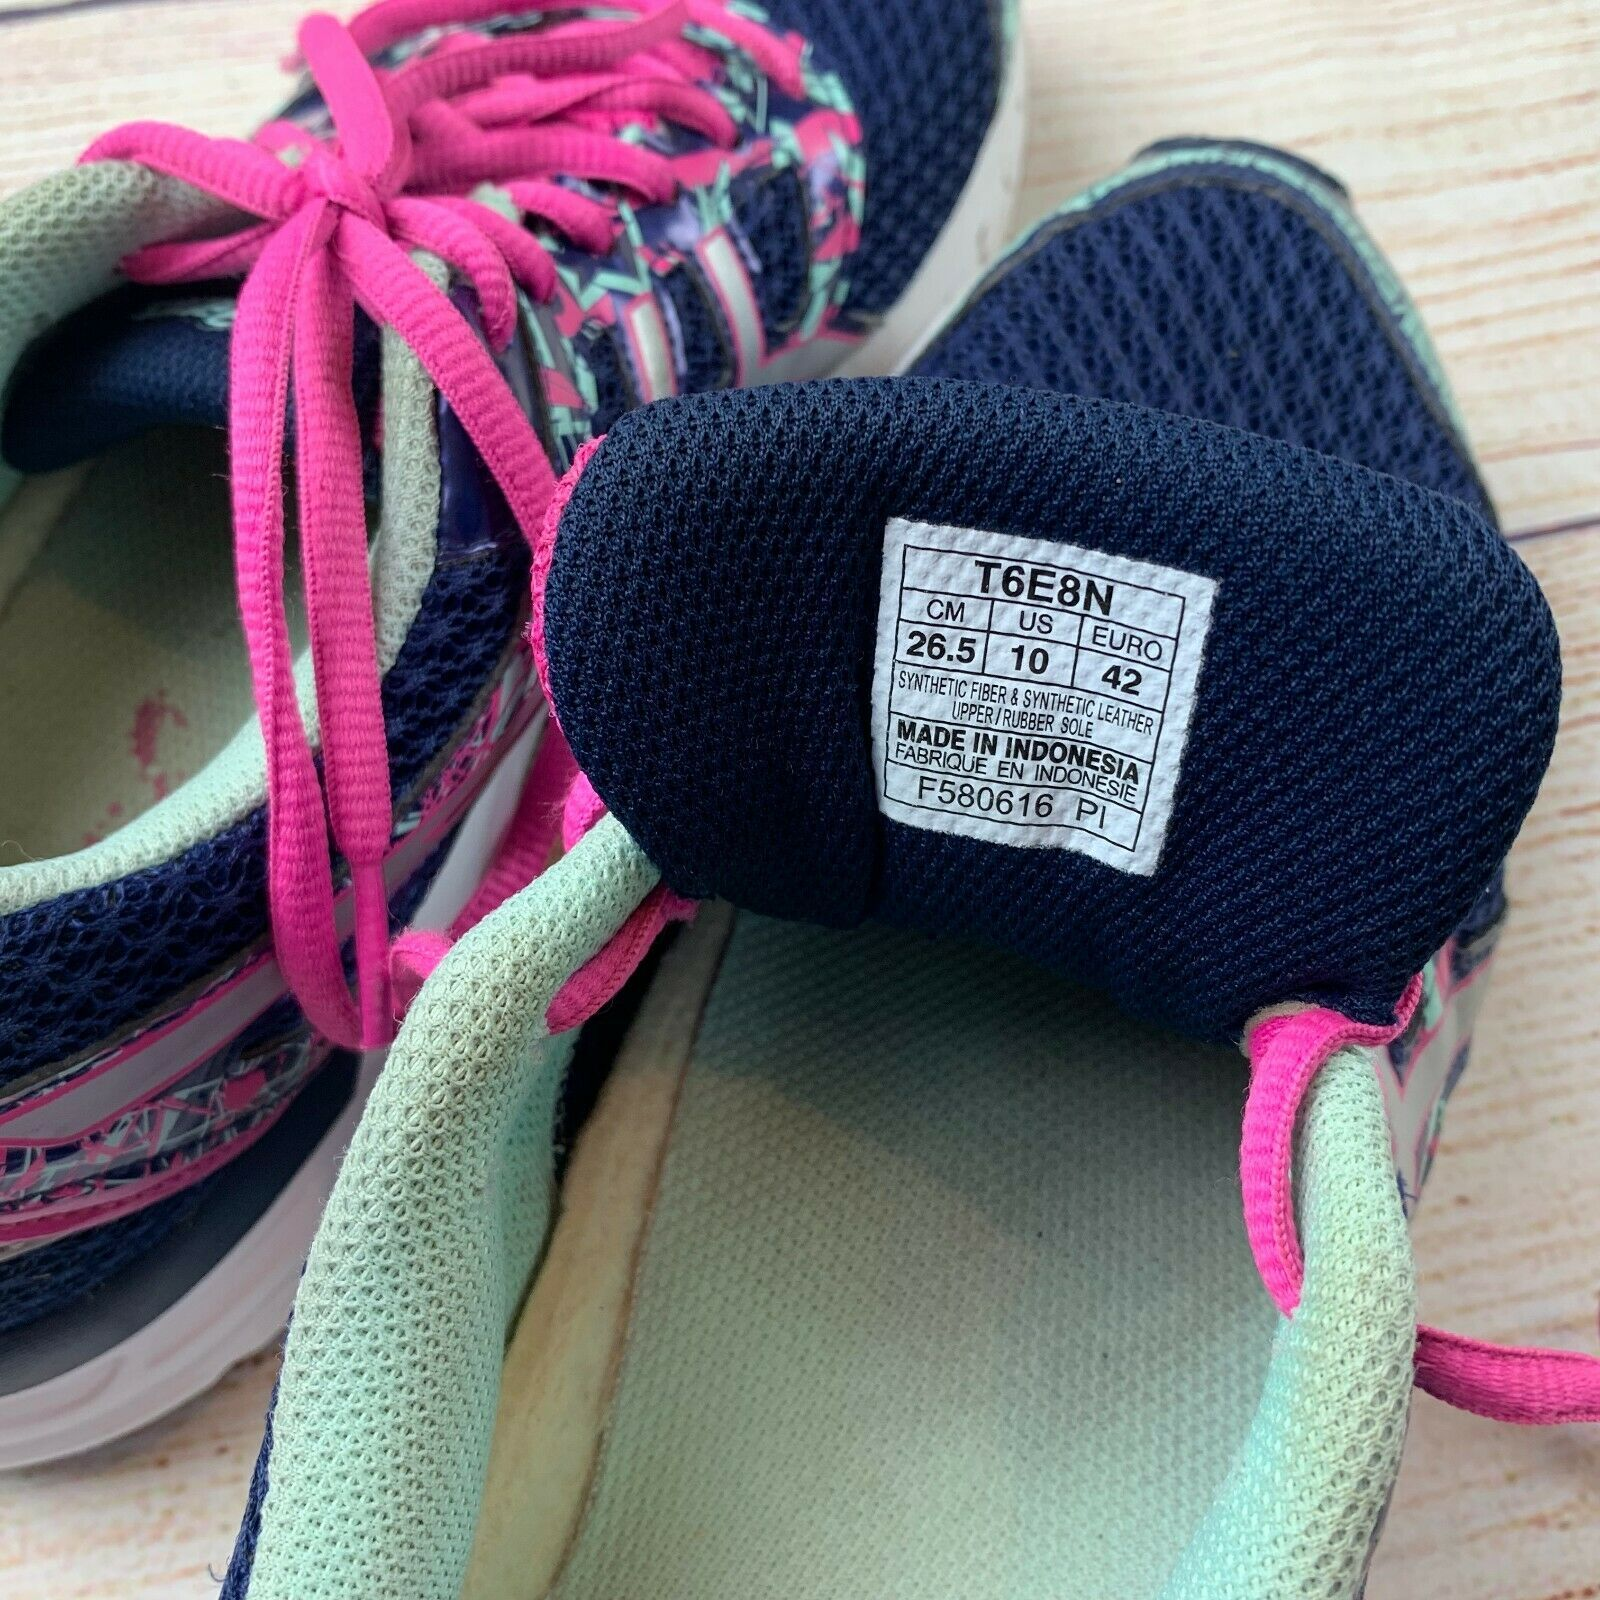 Asics womens Gel Excite 4 Navy Pink Running Shoes Sneakers 10/ 42 EUC image 7